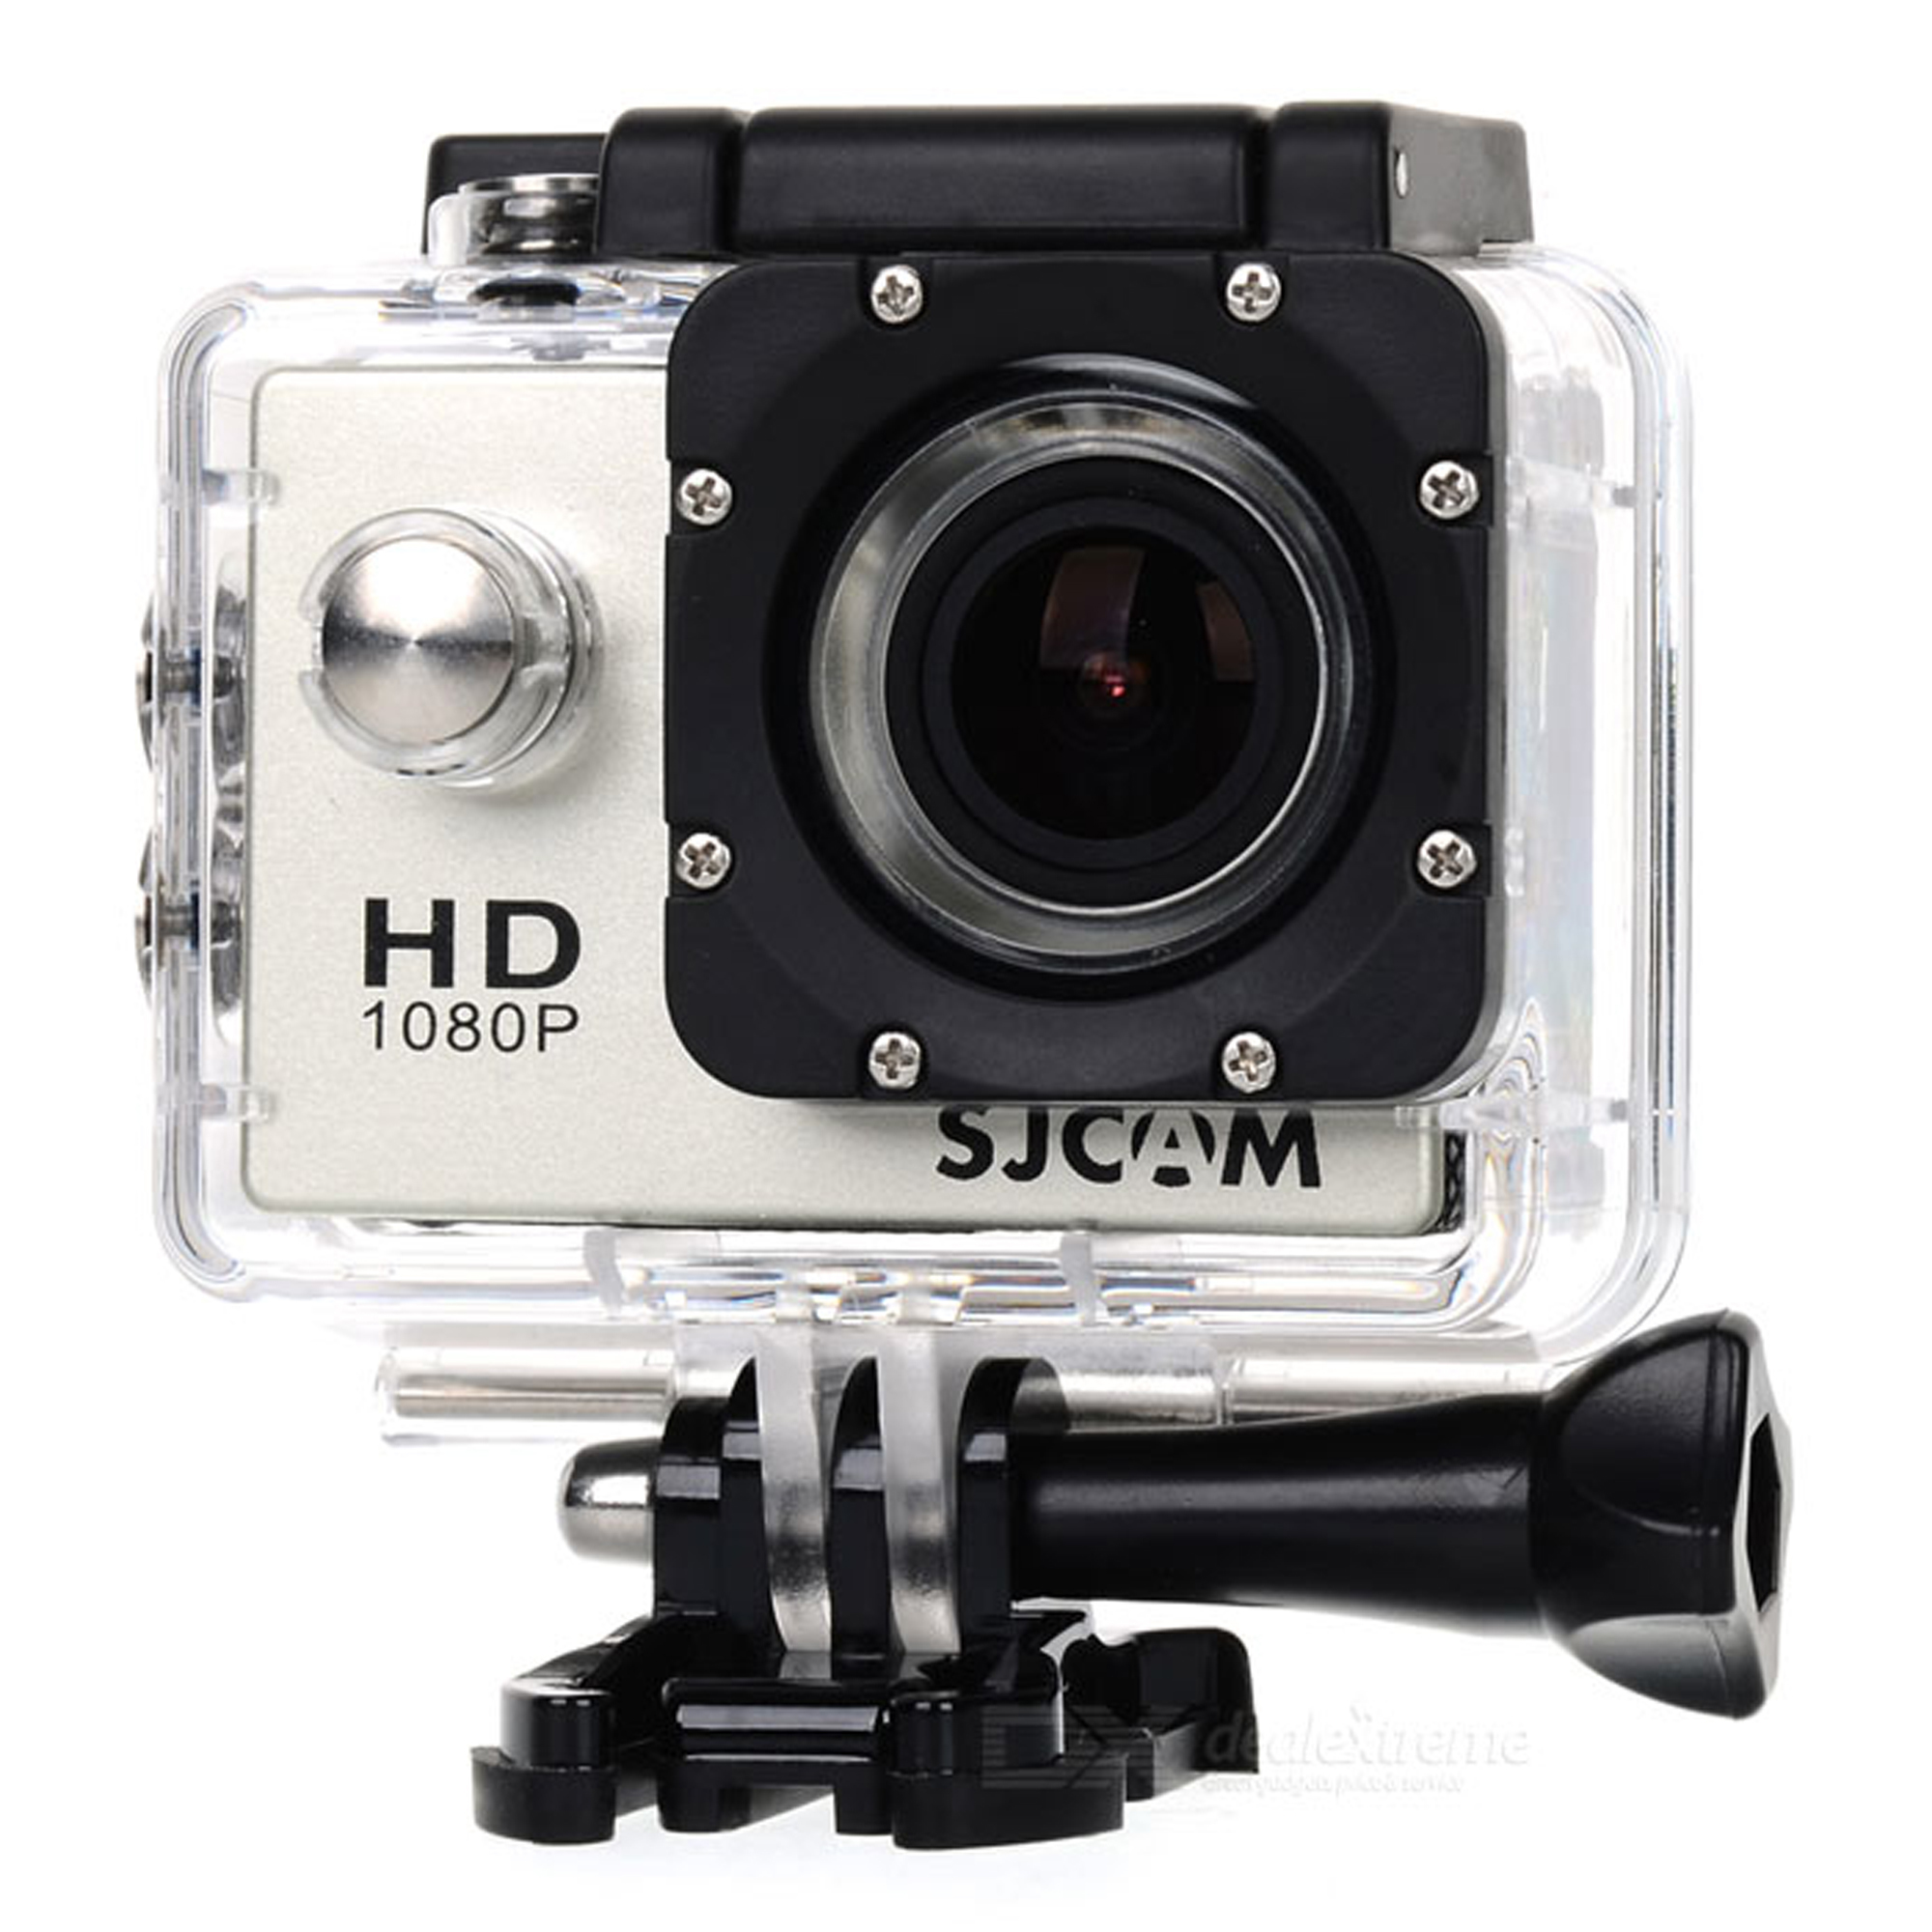 Instructions on how to set up a sjcam sj 4000 - Instructions On How To Set Up A Sjcam Sj 4000 56